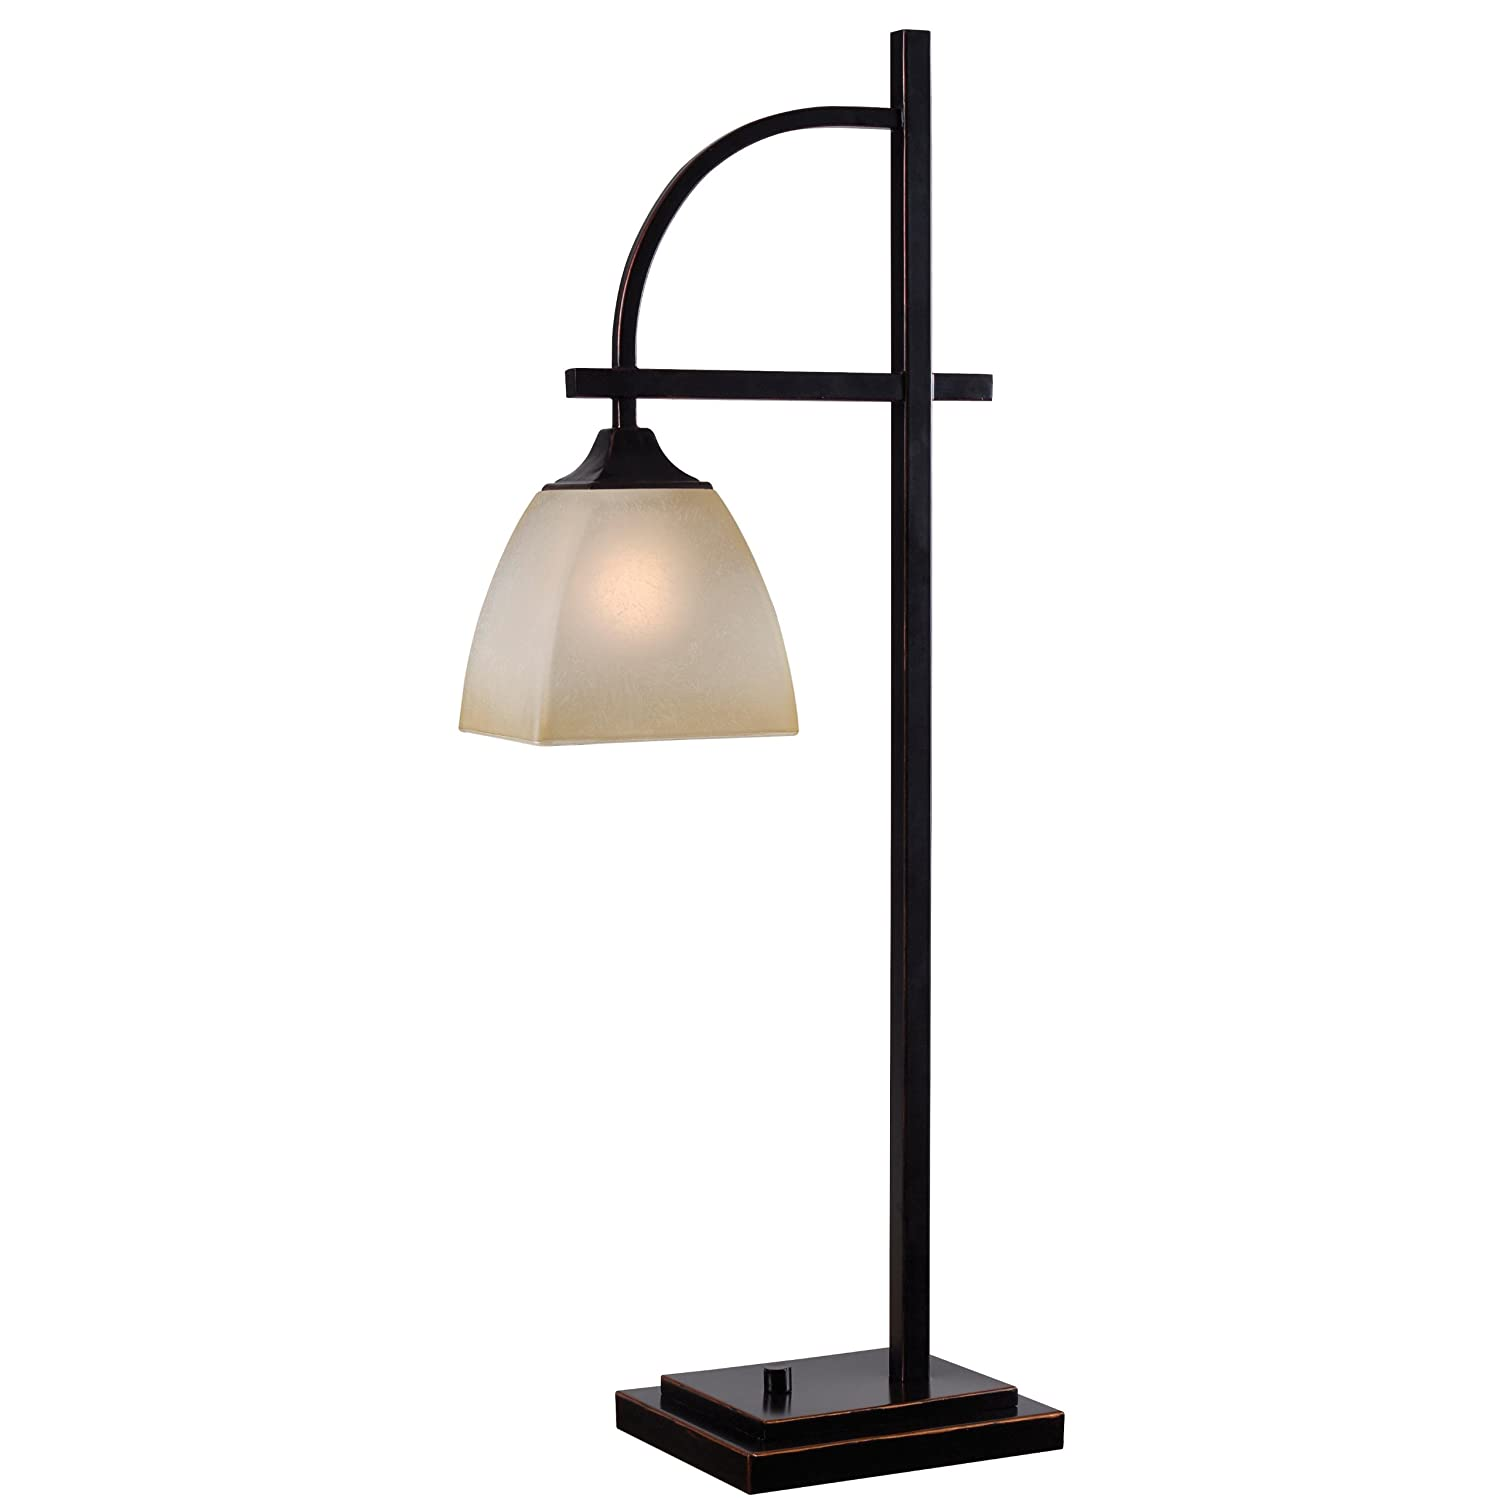 Kenroy home 32290orb arch table lamp oil rubbed bronze finish kenroy home 32290orb arch table lamp oil rubbed bronze finish amazon aloadofball Gallery